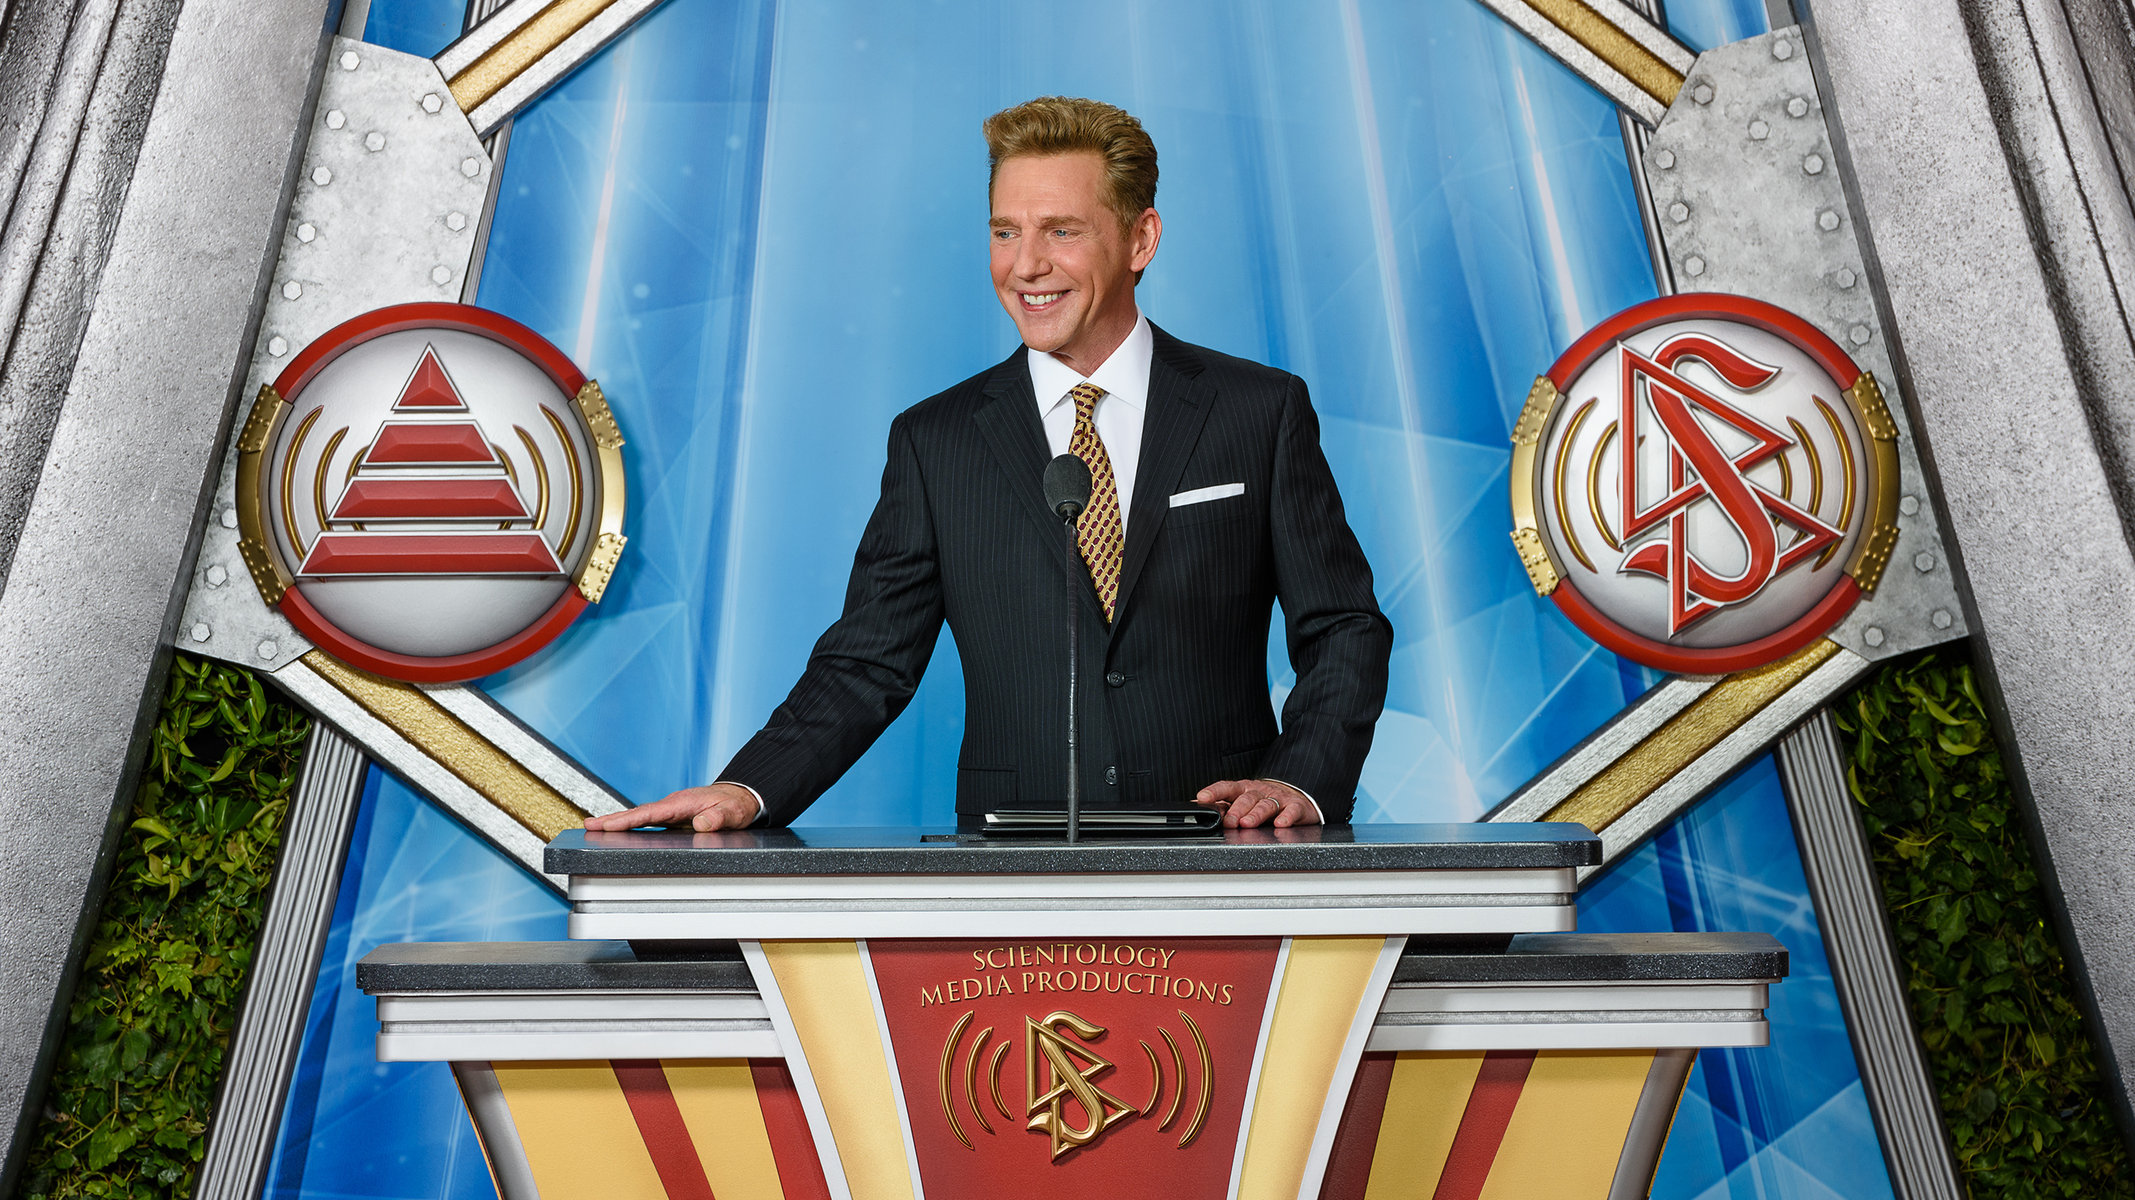 David Miscavige, the leader of the Church of Scientology.